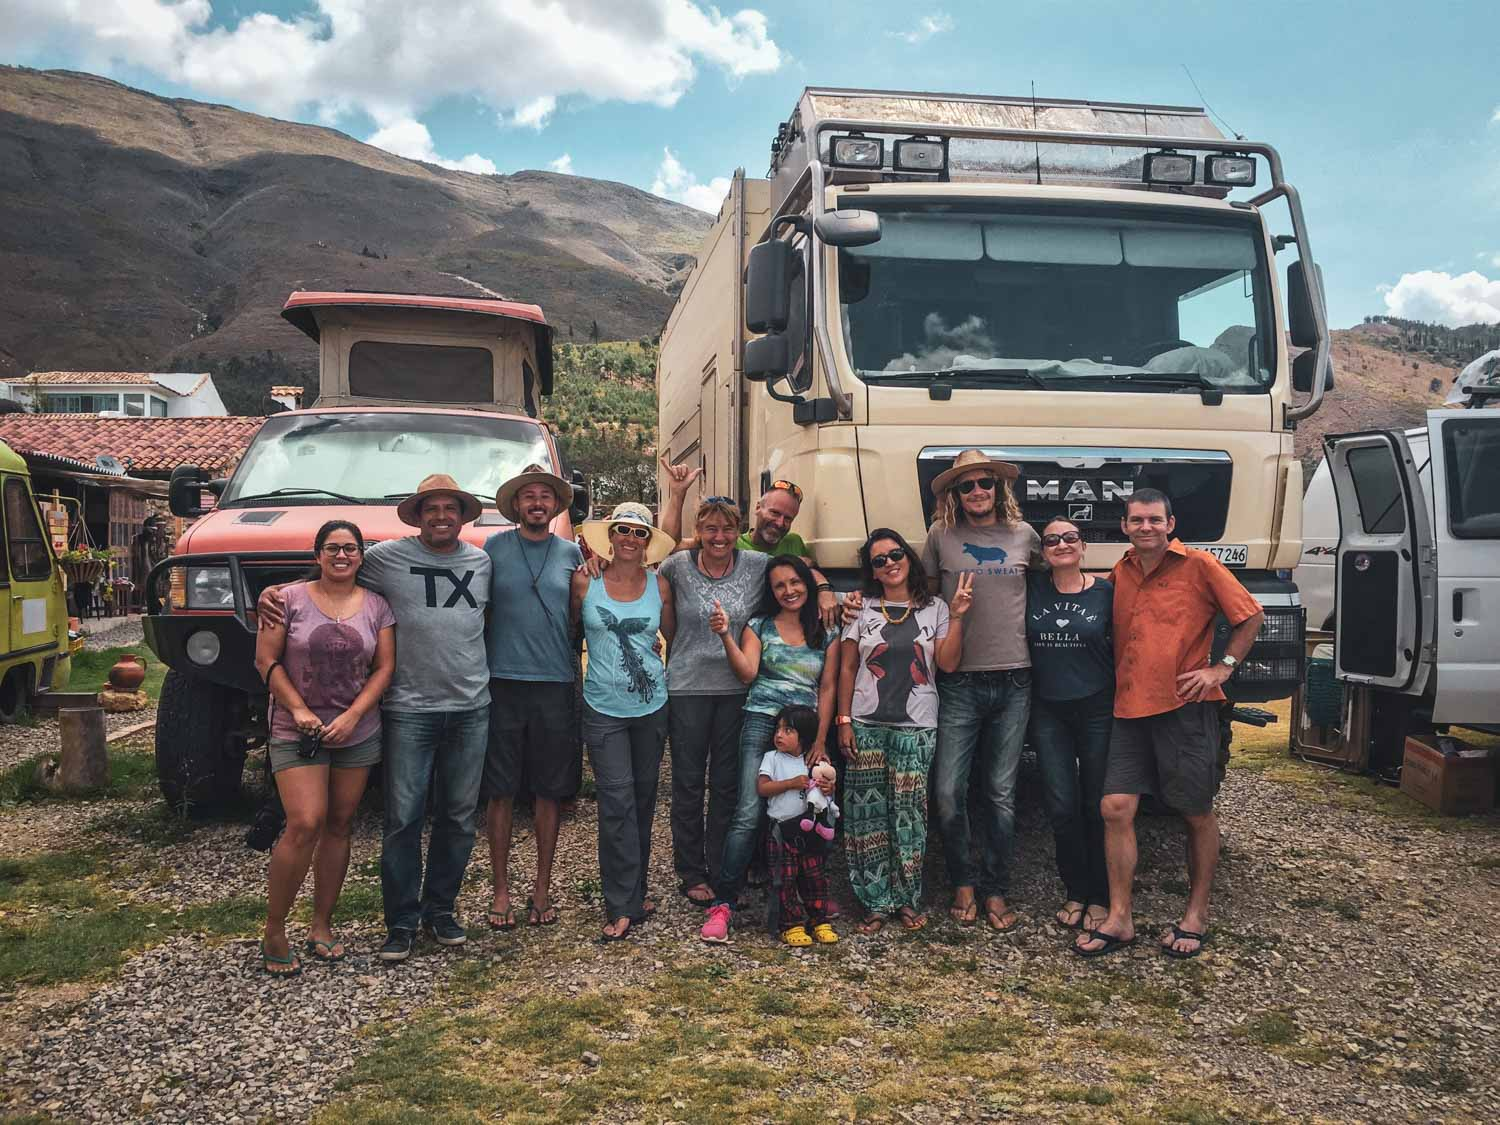 A great group of friends. From left to right, local traveler, Santiago(MI Refugio), John and Mandi(USA), Barbara and Mark(Swiss couple), Diana and Lucia(Mi Refugio), Ingrid, Matty, and Julie and Marcus(Brit couple)